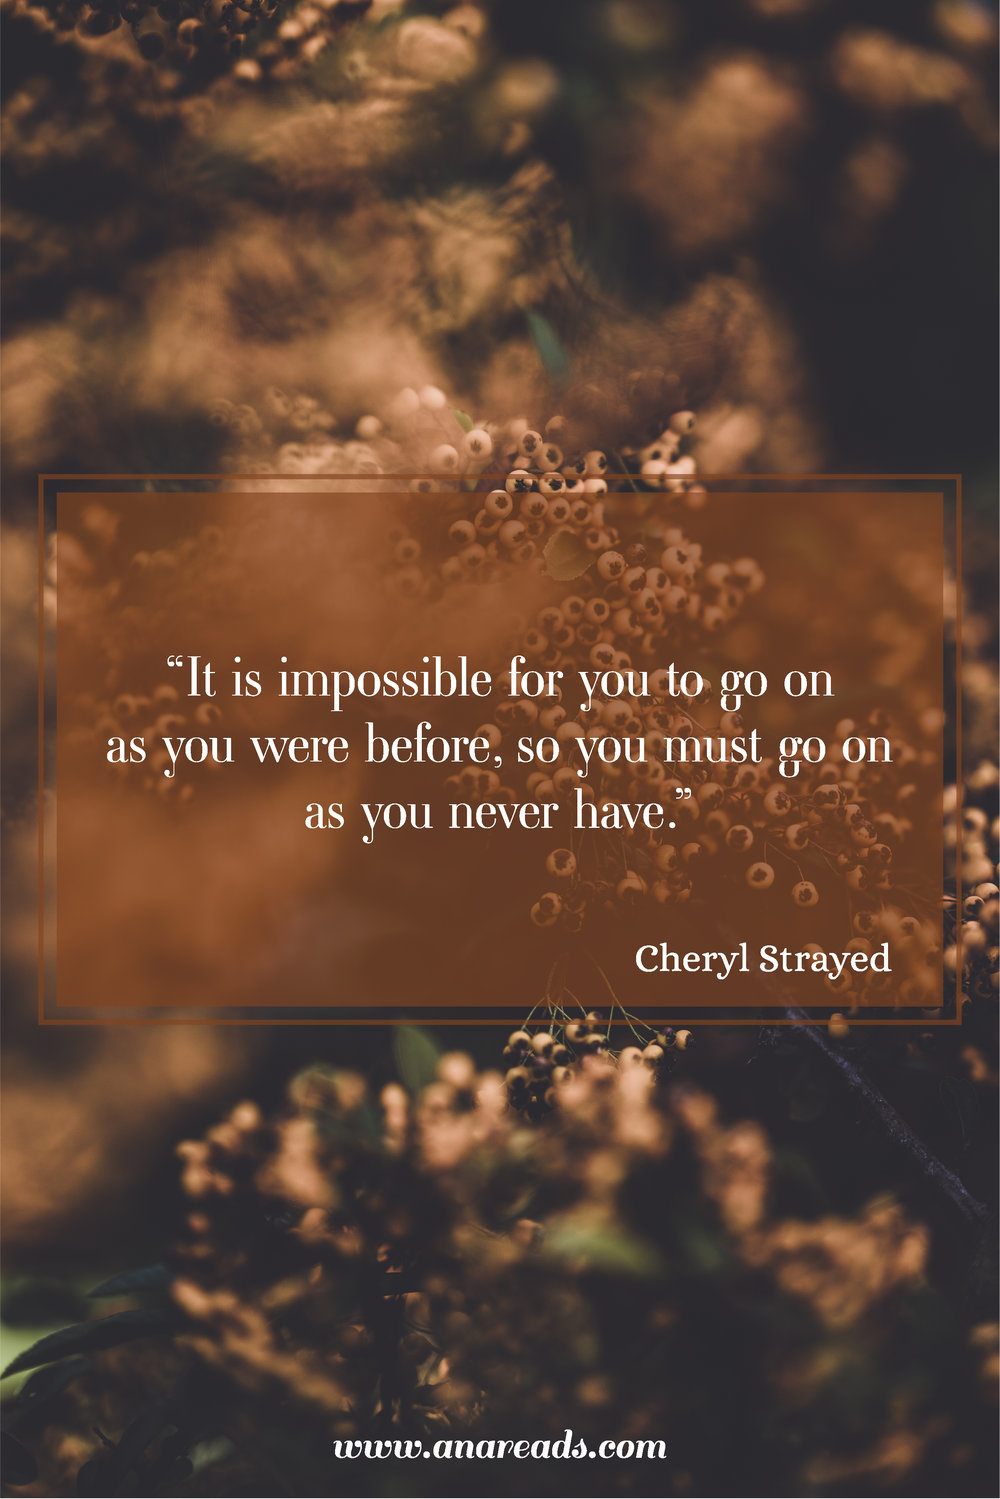 Cheryl Strayed quote Dear Sugar - it is impossible for you to go on